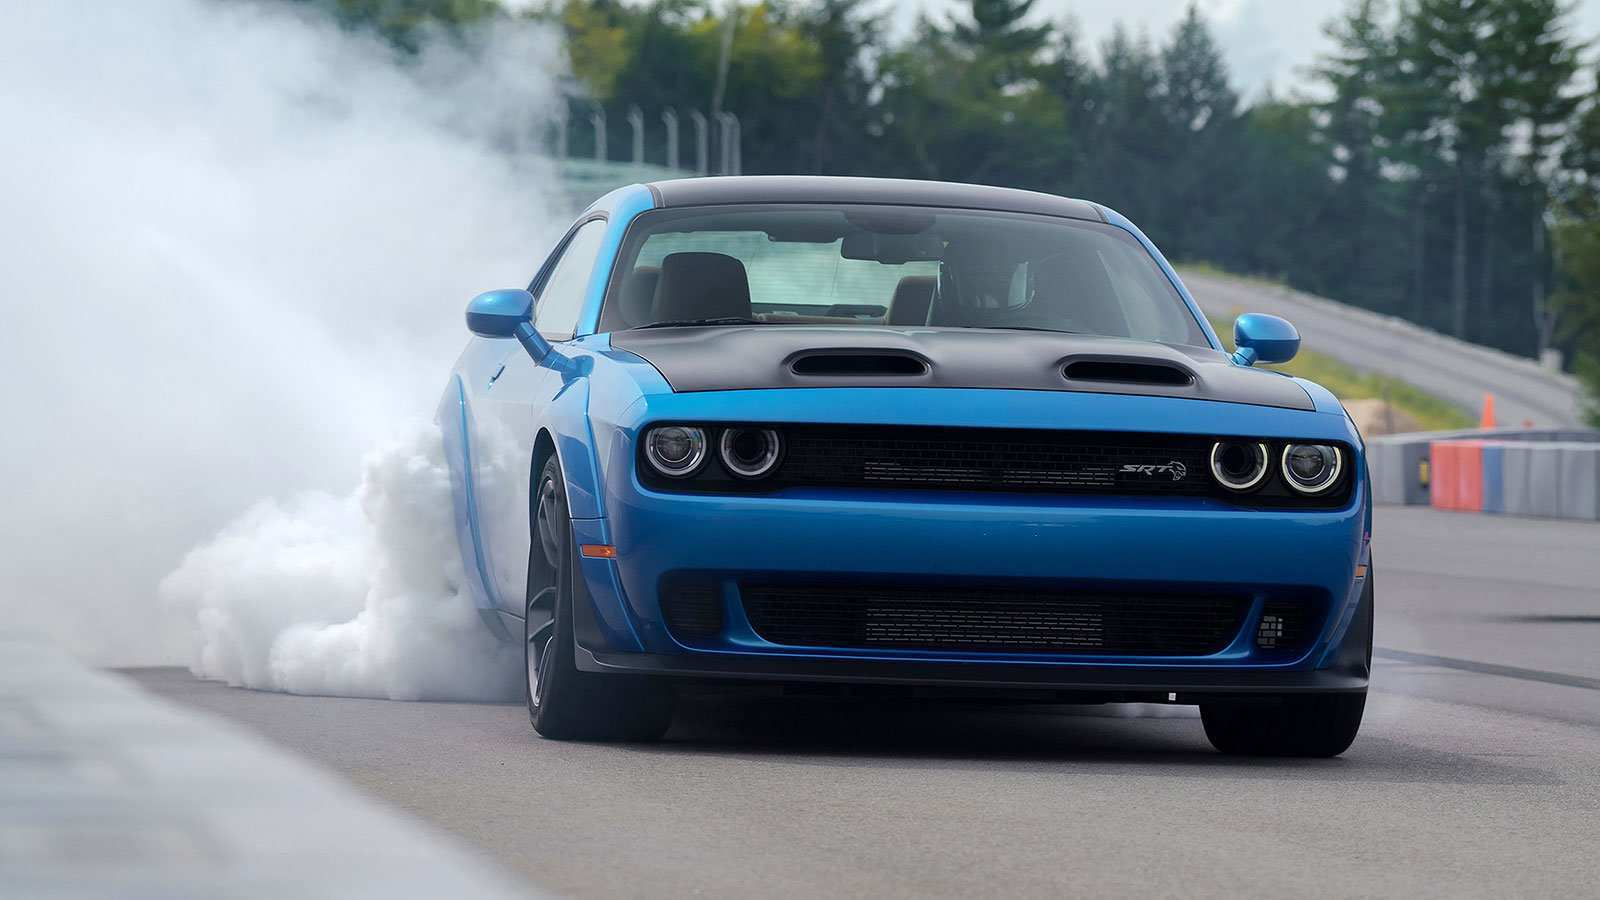 39 Great When Will The 2020 Dodge Challenger Come Out Images with When Will The 2020 Dodge Challenger Come Out